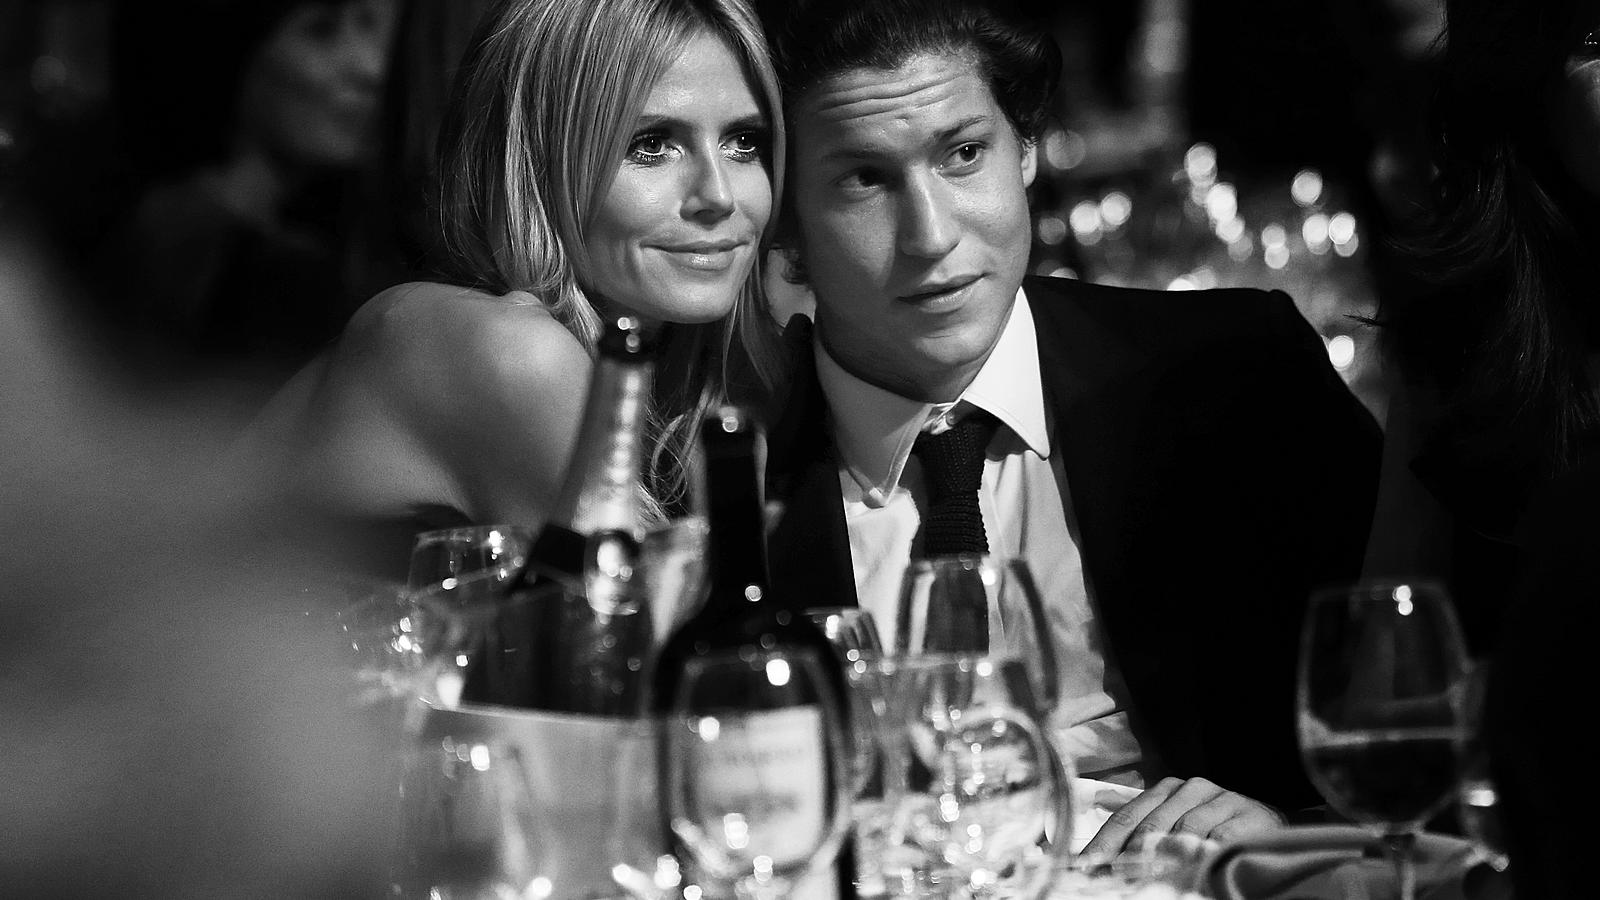 MILAN, ITALY - SEPTEMBER 20:  (EDITORS NOTE: This image was processed using digital filters) An alternative view of Heidi Klum and Vito Schnabel  at amfAR's Milano 2014  duirng the Milan Fashion Week Womenswear Spring/Summer 2015 on September 20, 201